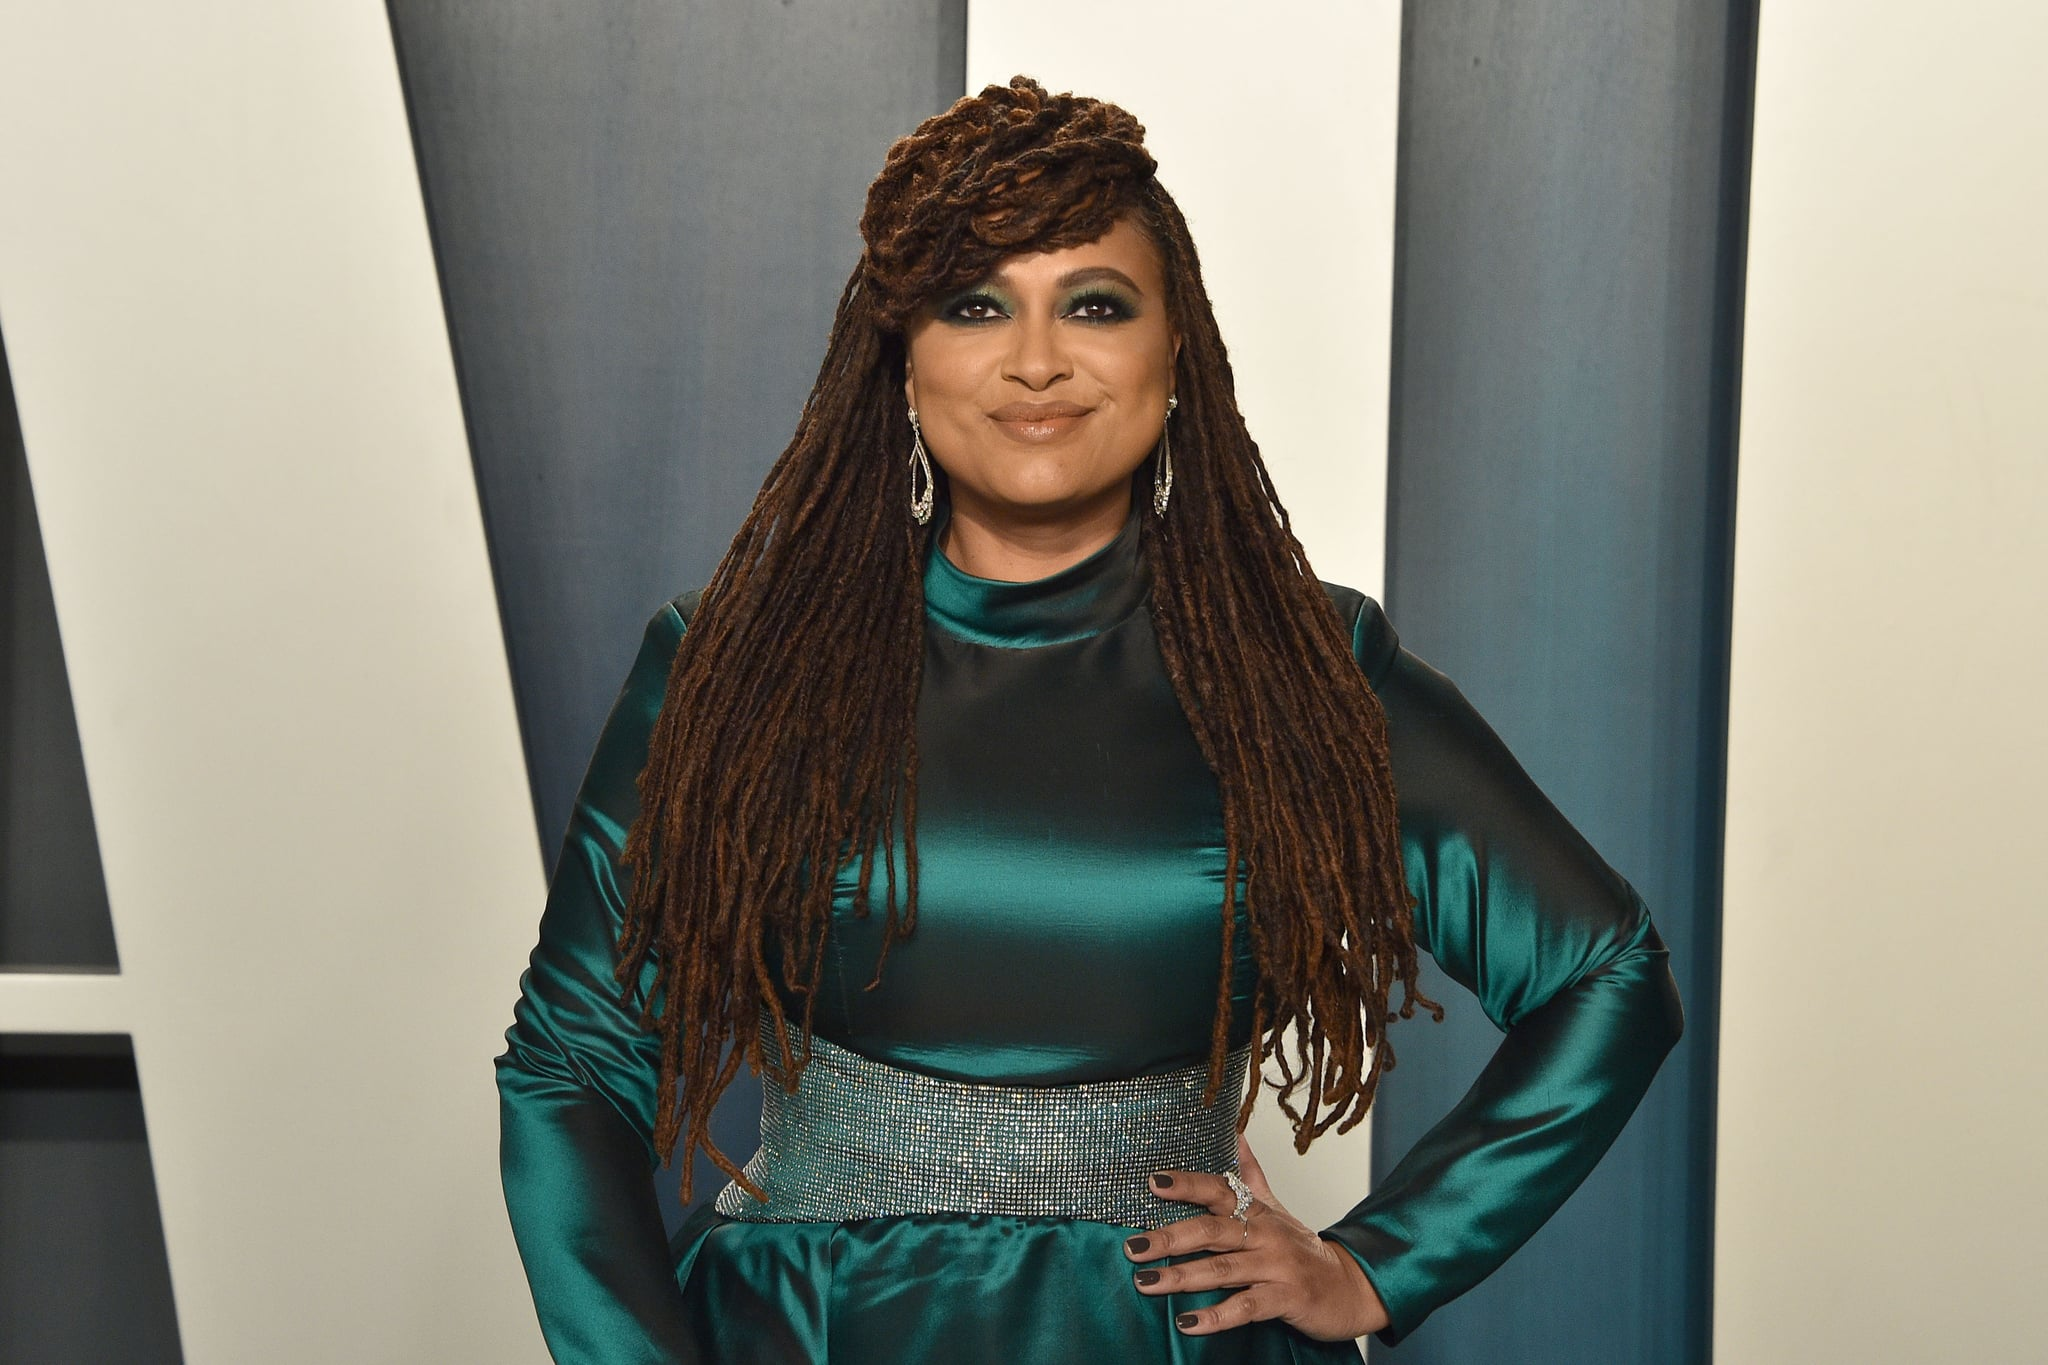 BEVERLY HILLS, CALIFORNIA - FEBRUARY 09: Ava DuVernay attends the 2020 Vanity Fair Oscar Party at Wallis Annenberg Center for the Performing Arts on February 09, 2020 in Beverly Hills, California. (Photo by David Crotty/Patrick McMullan via Getty Images)